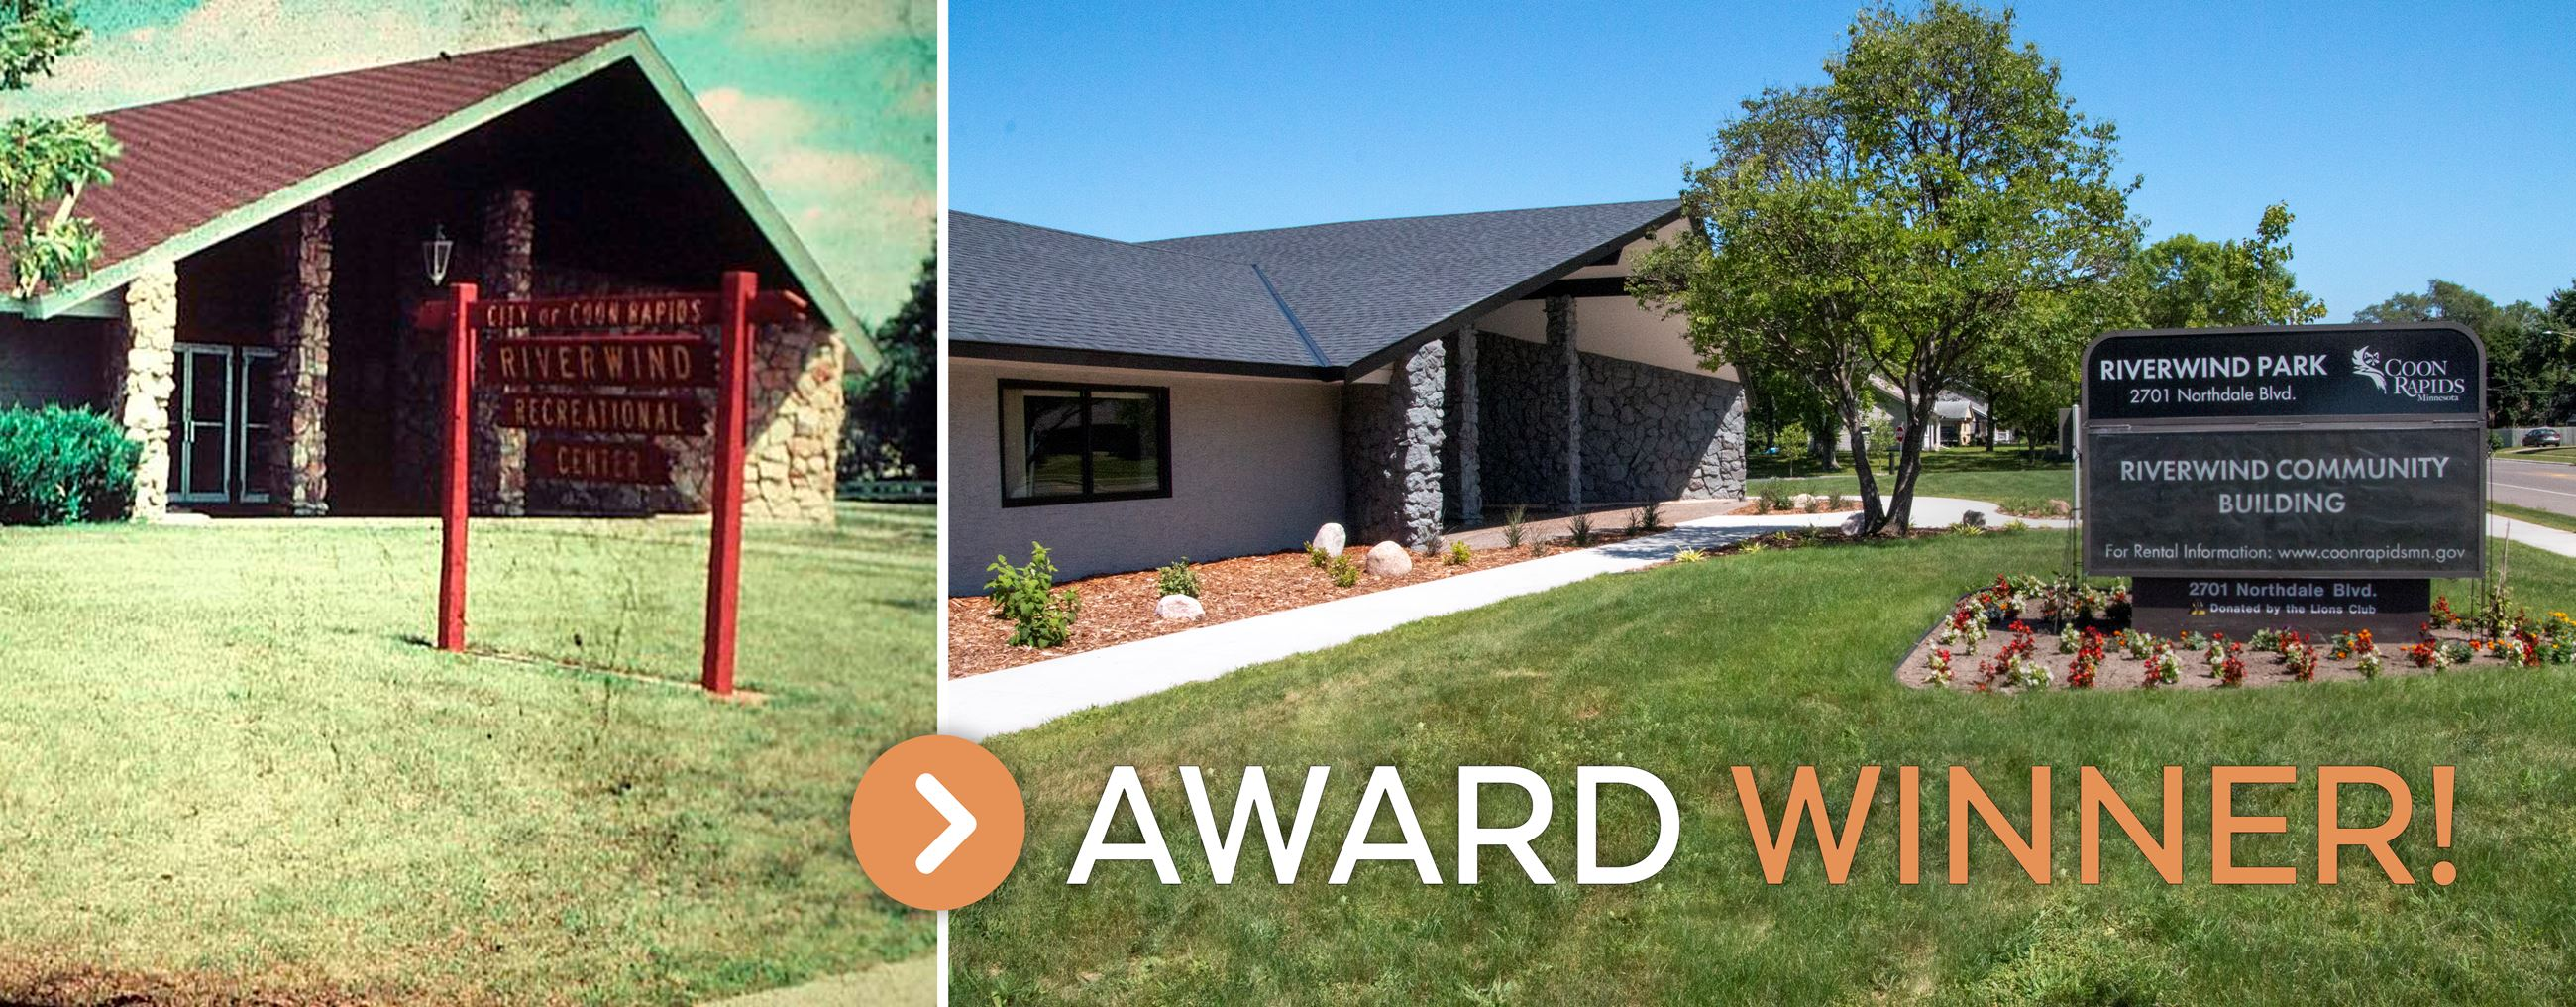 Before & after exterior photos of Riverwind Park Building titled: Award Winner